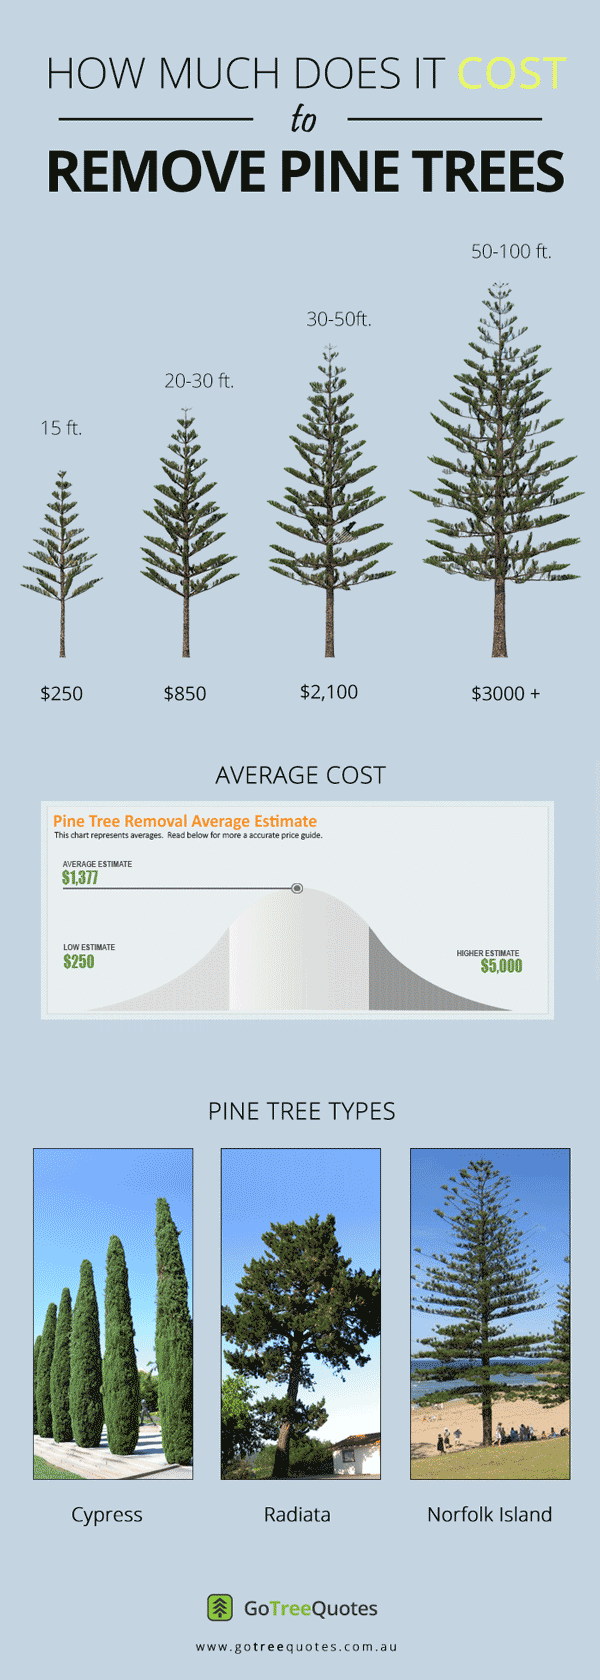 PINE-TREE-REMOVAL-COST-INFOGRAPHIC